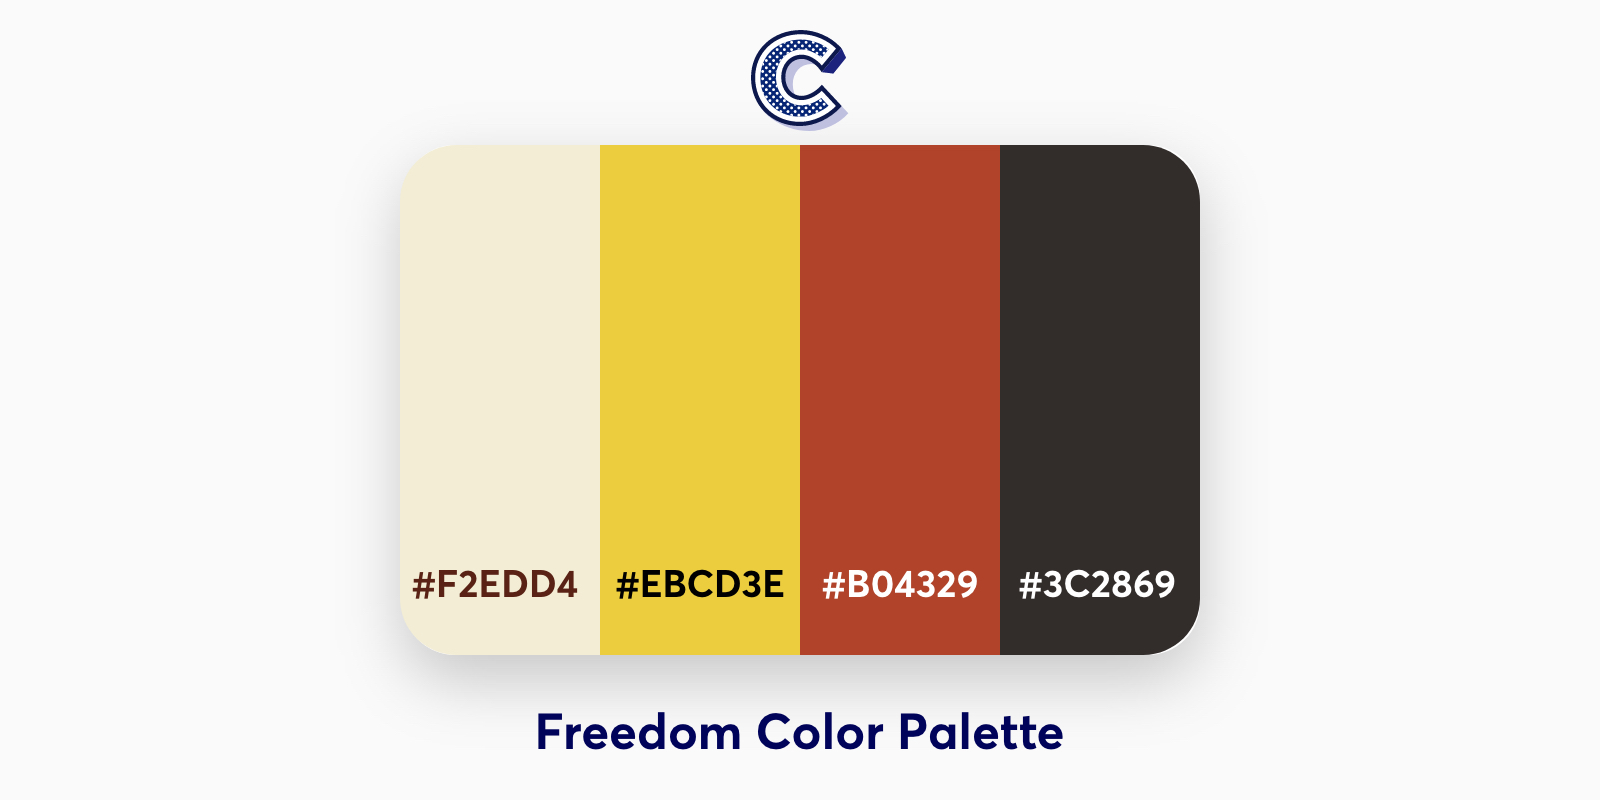 the featured image of freedom color palette